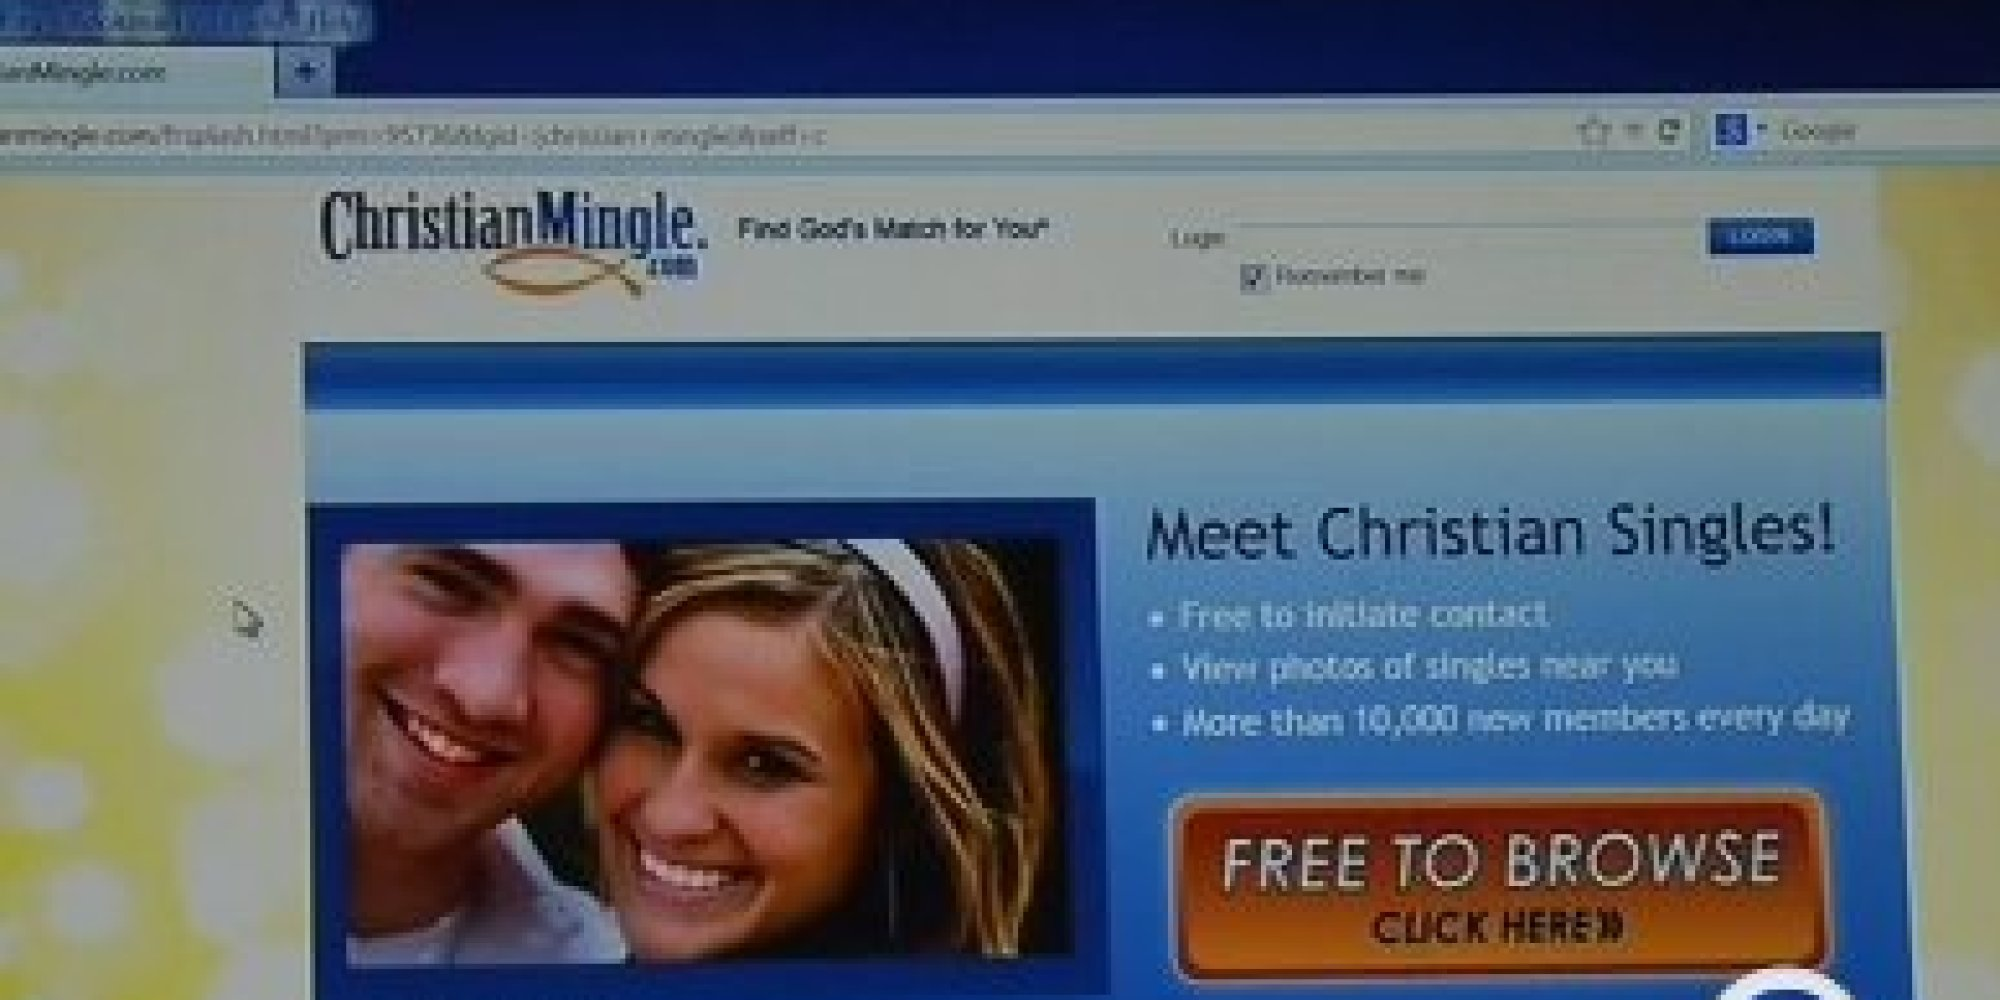 Christian mingle dating website